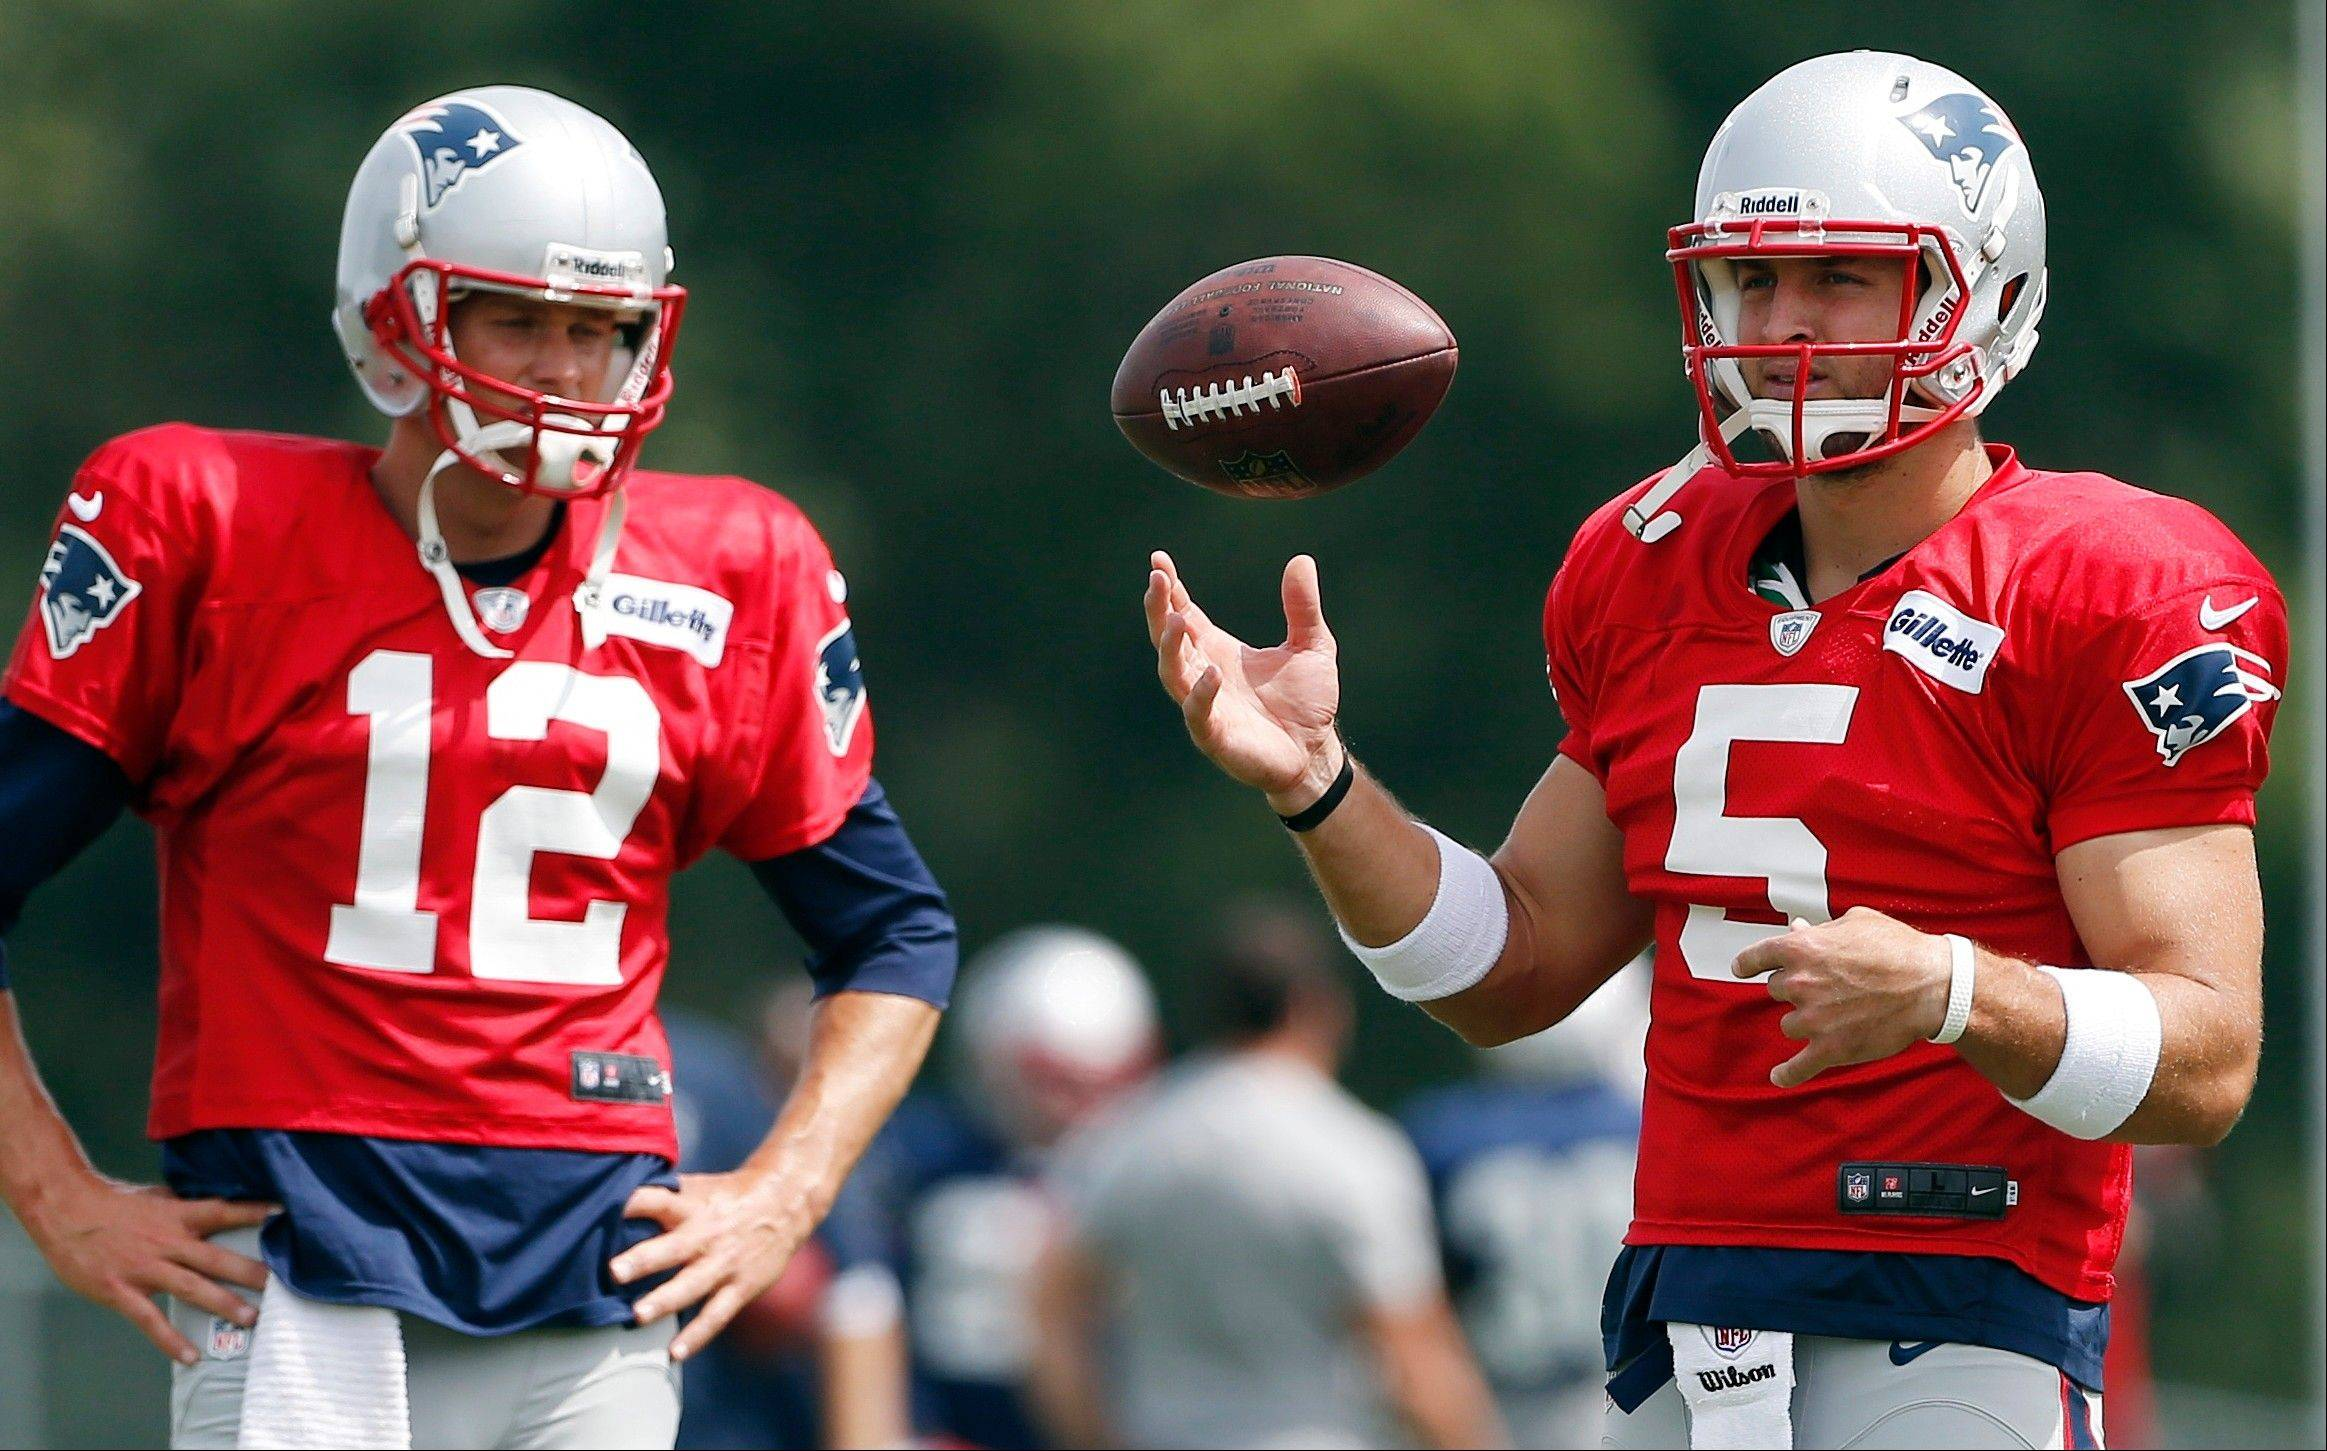 New England Patriots quarterback Tim Tebow (5) tosses a ball next to quarterback Tom Brady (12) during NFL football practice in Foxborough, Mass., Monday, Aug. 19, 2013. (AP Photo/Michael Dwyer)